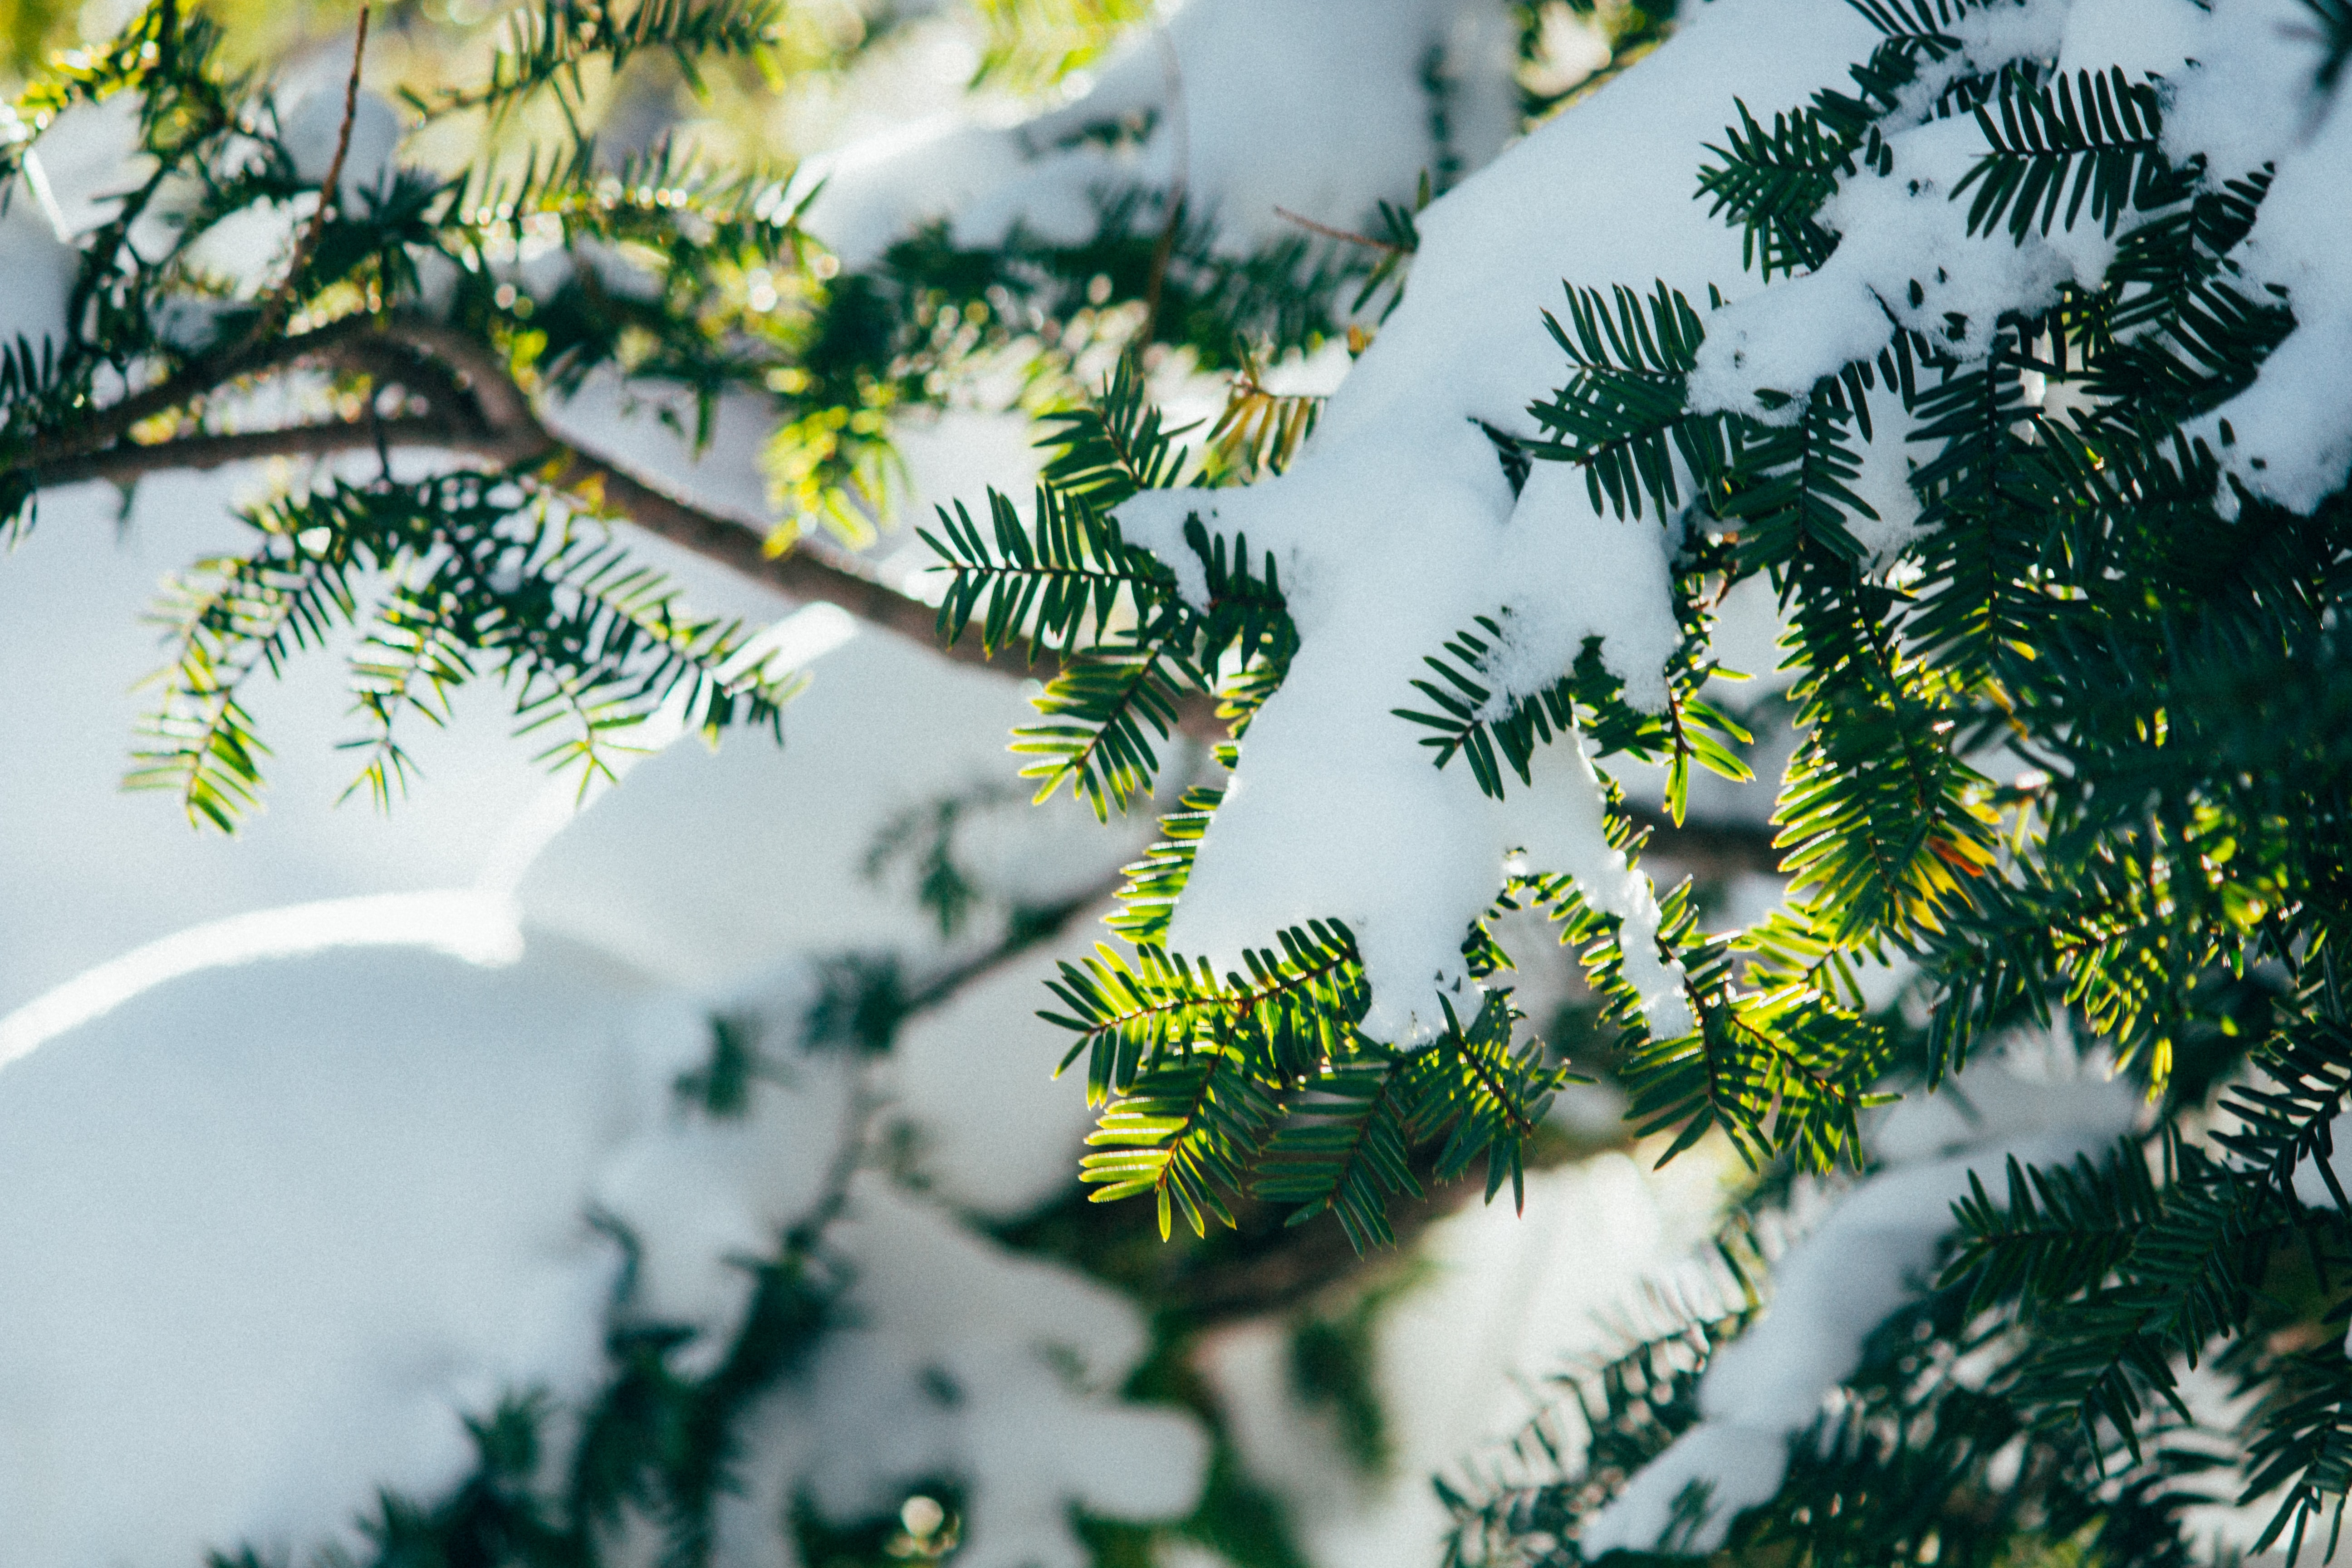 122747 download wallpaper Macro, Branches, Snow, Plant, Winter screensavers and pictures for free